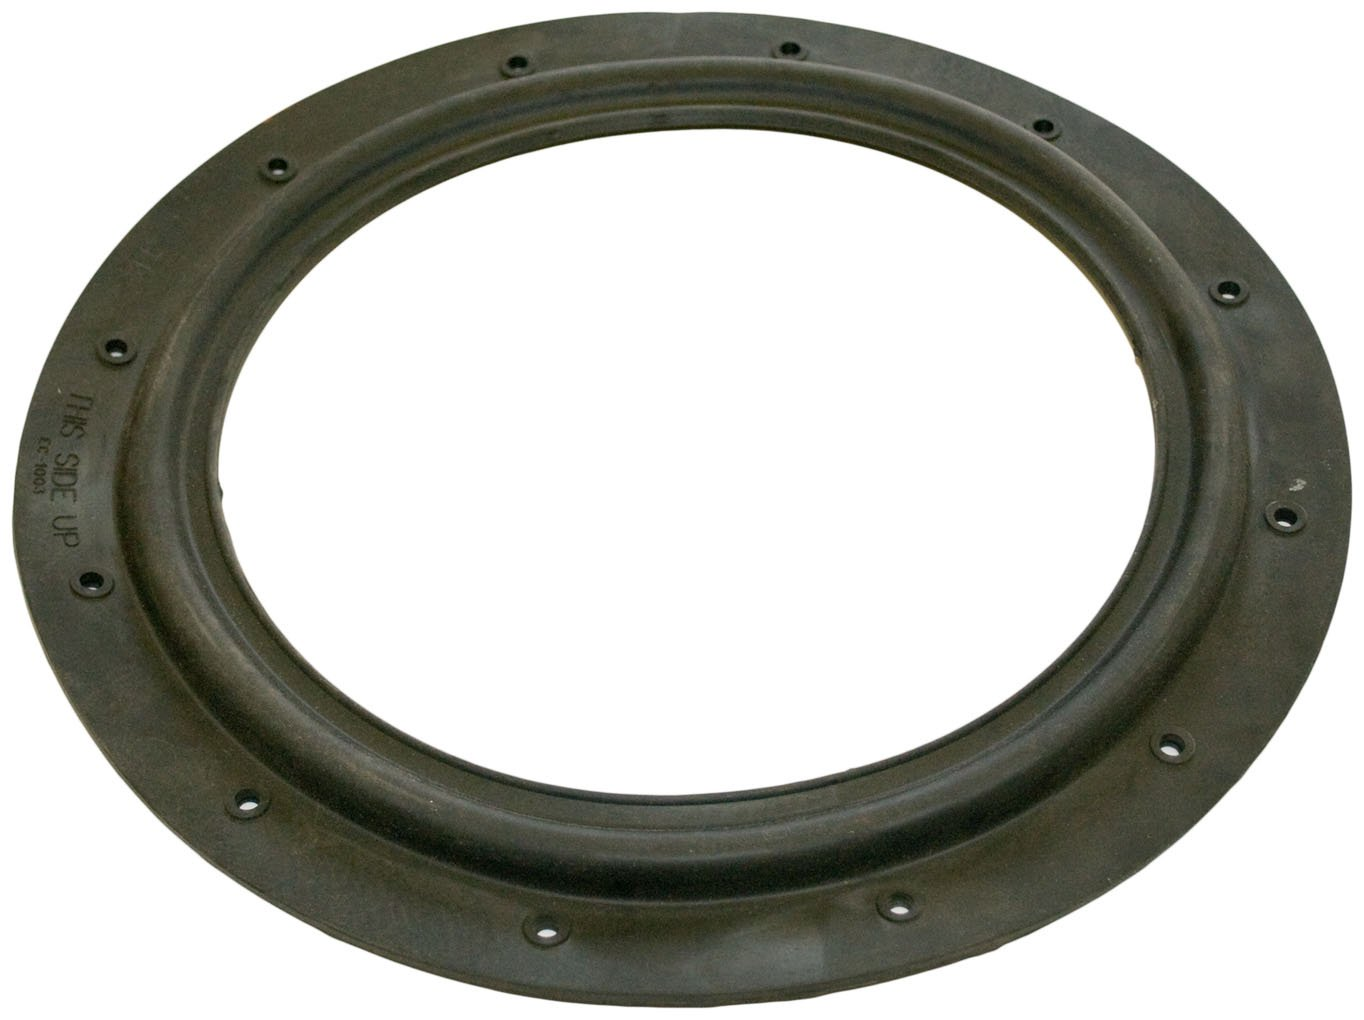 Hayward ECX1003 Diaphragm Perflex Gasket for DE Filter